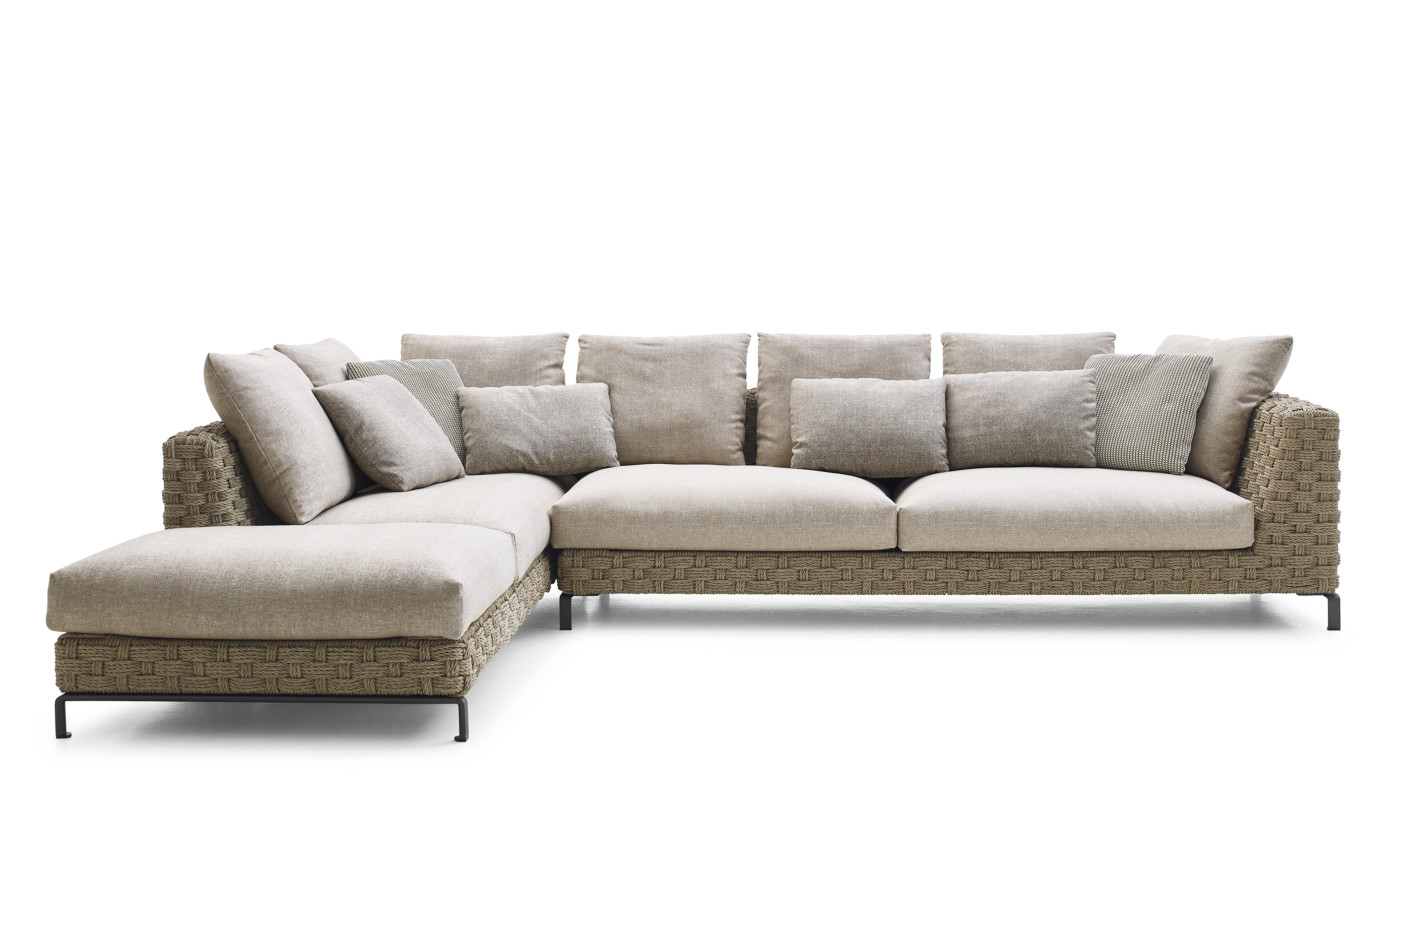 Ray outdoor natural corner sofa by b b italia stylepark for Urban sofa deutschland